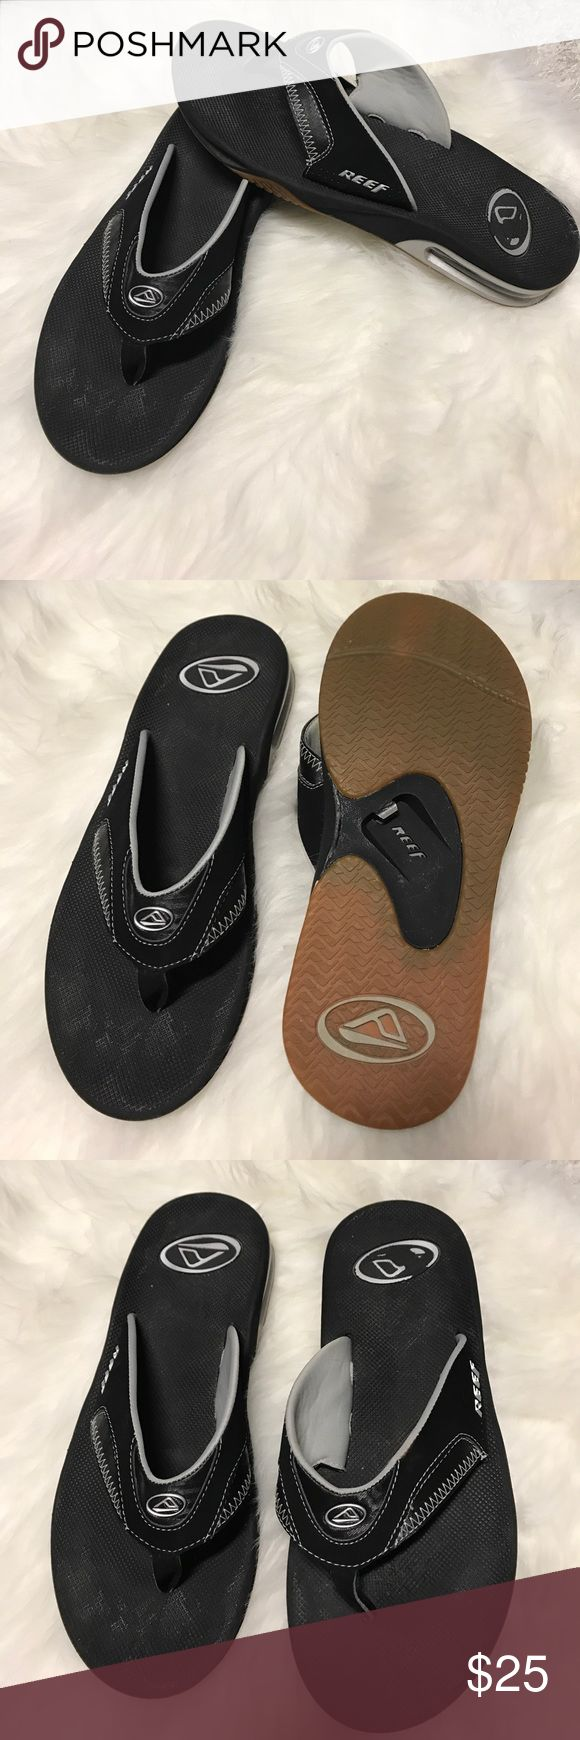 Men's Reef Sandal Gently worn! Men's Reef Sandal, size 9 Reef Shoes Sandals & Flip-Flops